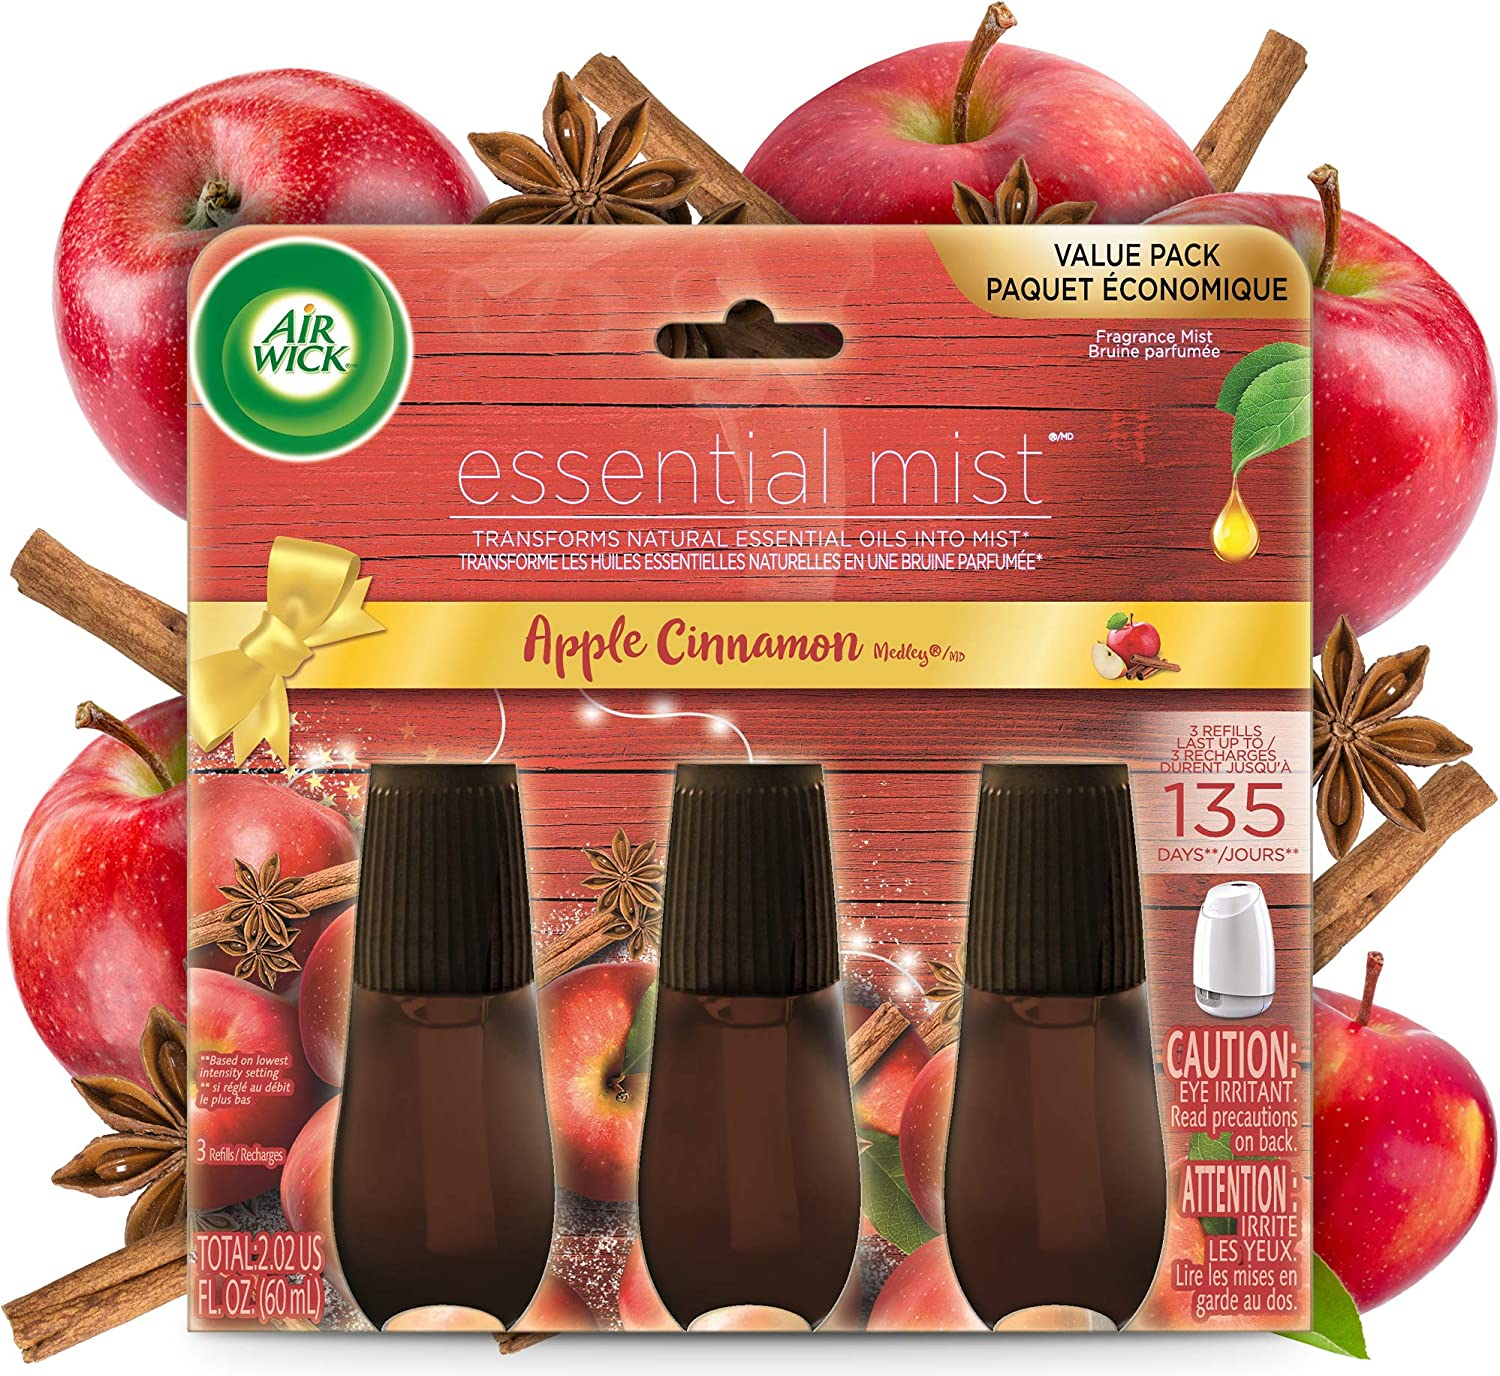 Air Wick Essential Mist, Essential Oils Diffuser, Apple Cinnamon Medley, 3ct, Fall Scent, Fall Spray, Air Freshener